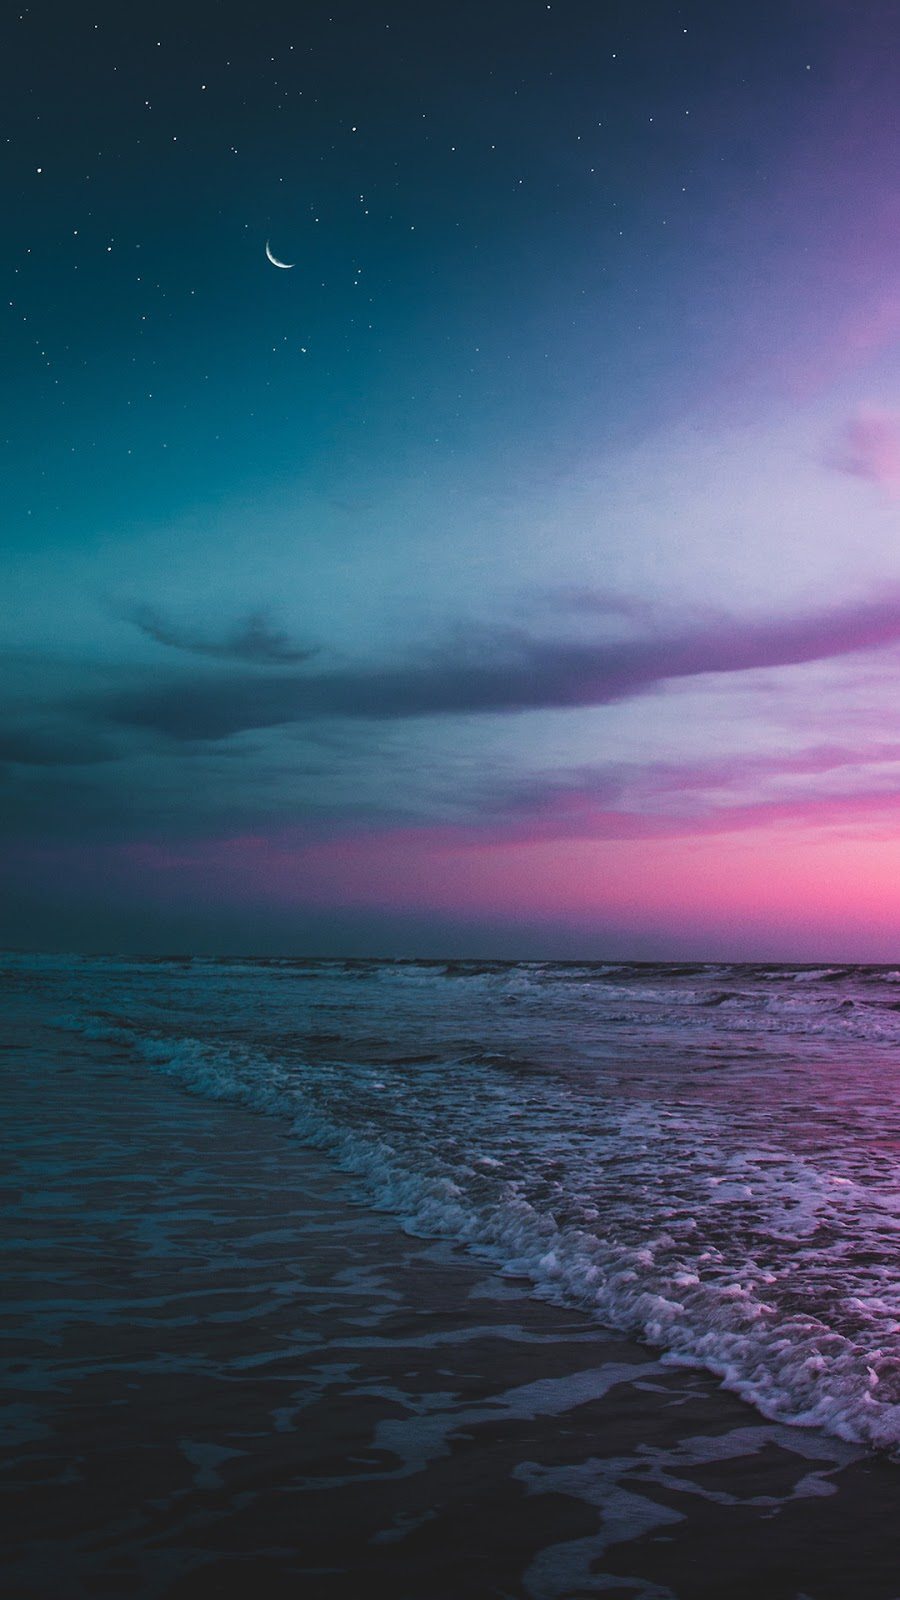 Beach night wallpaper